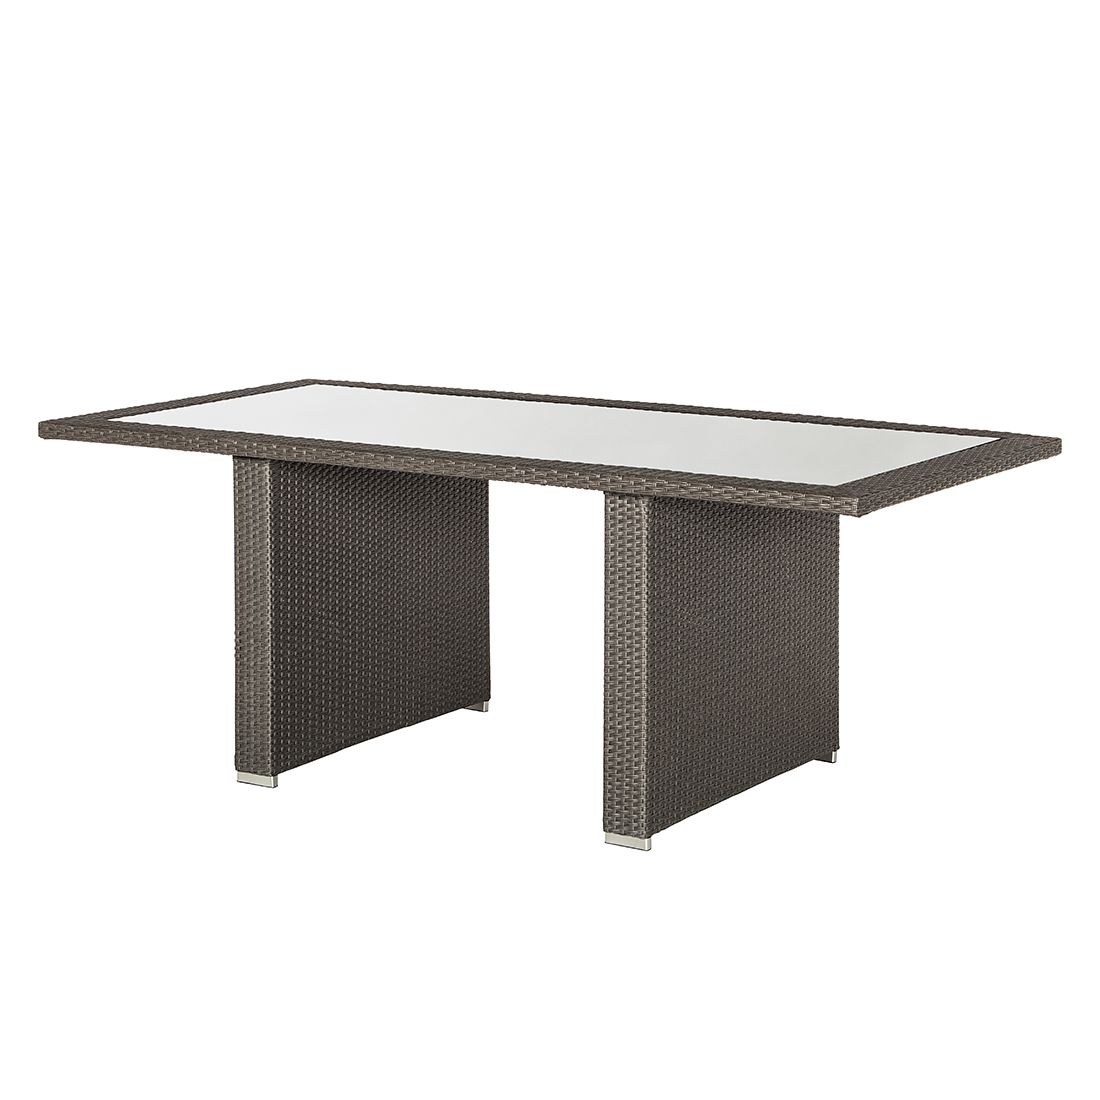 Table de jardin Pavona